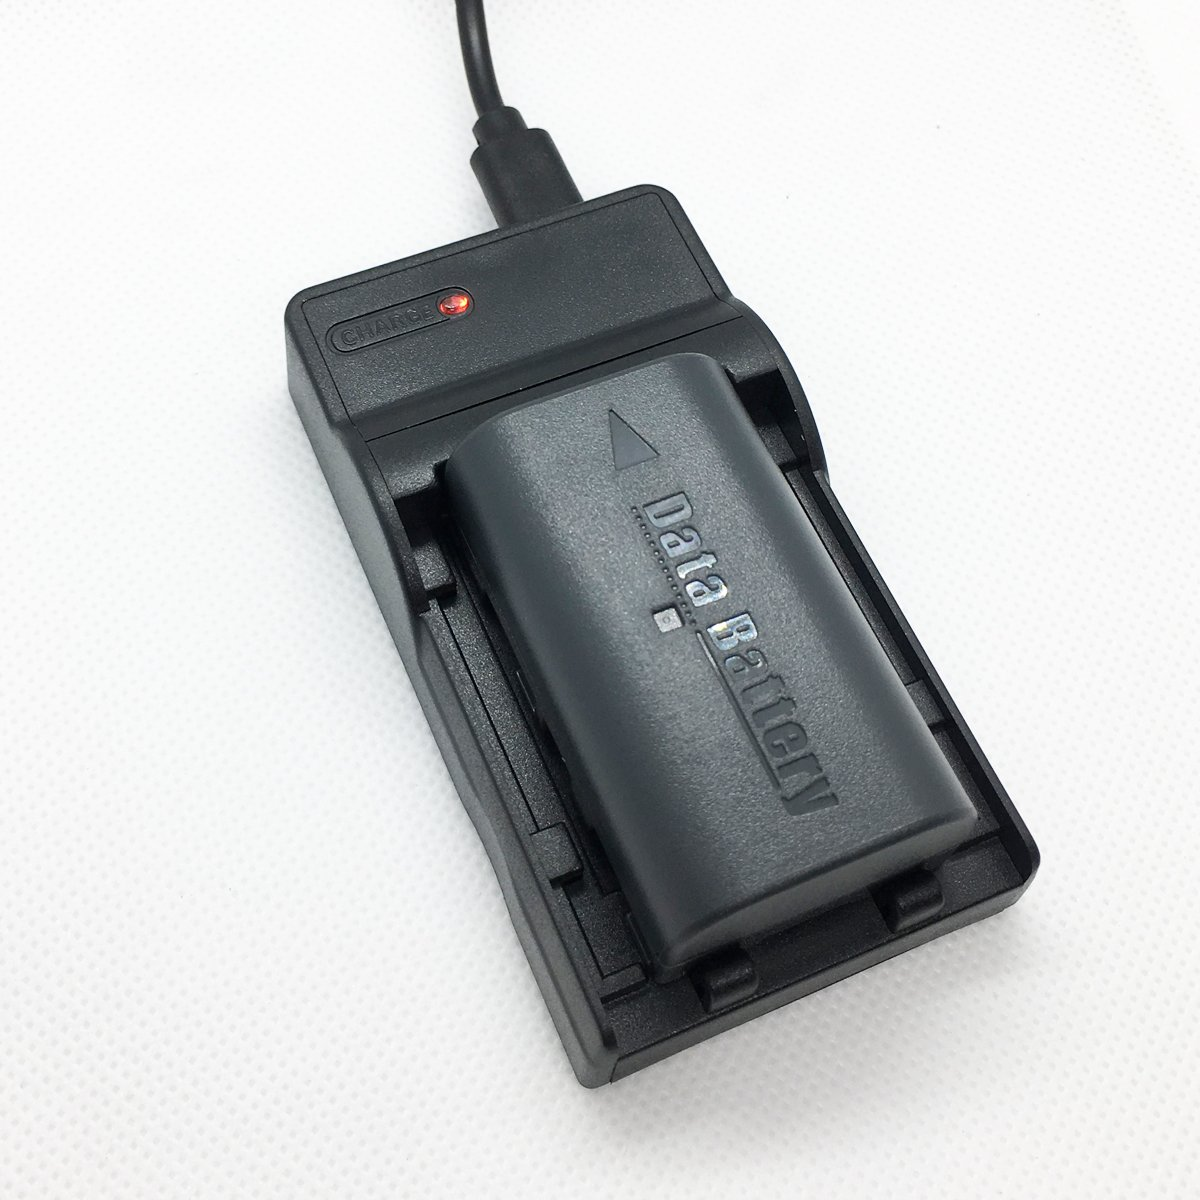 Amazon.com : Battery Pack and USB Charger Kit For JVC Everio GZ-MS120, GZ-MS120AU,  GZ-MS120BU, GZ-MS120RU Camcorder : Camera & Photo